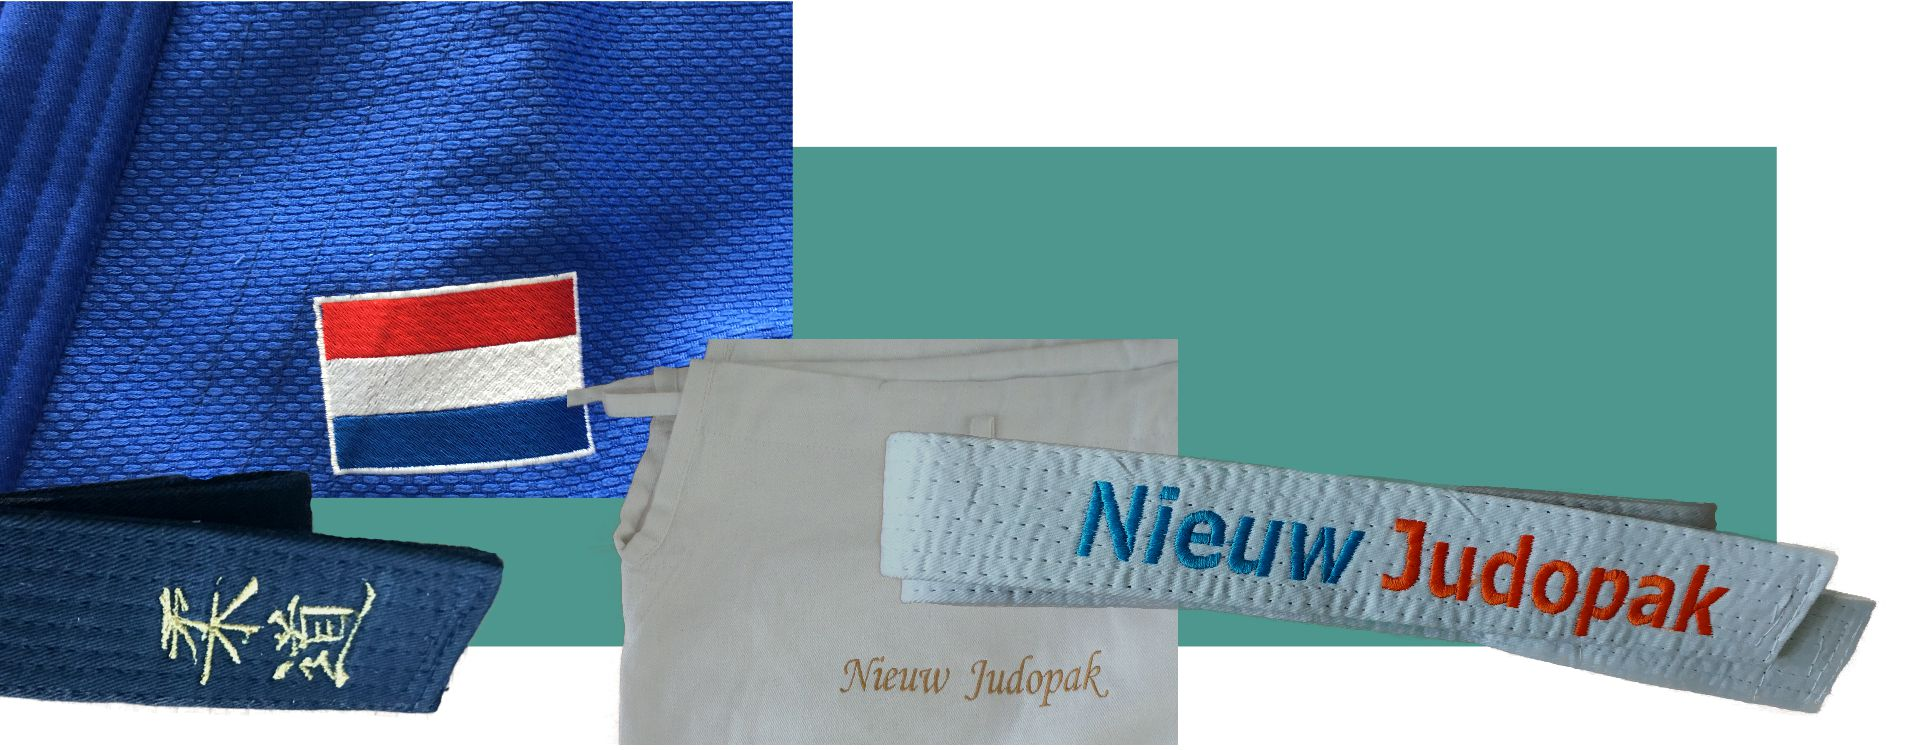 https://nieuwjudopak.be/wp-content/uploads/2017/03/shop-home-gallery-banner-borduurservice-Nieuw-Judopak.jpg